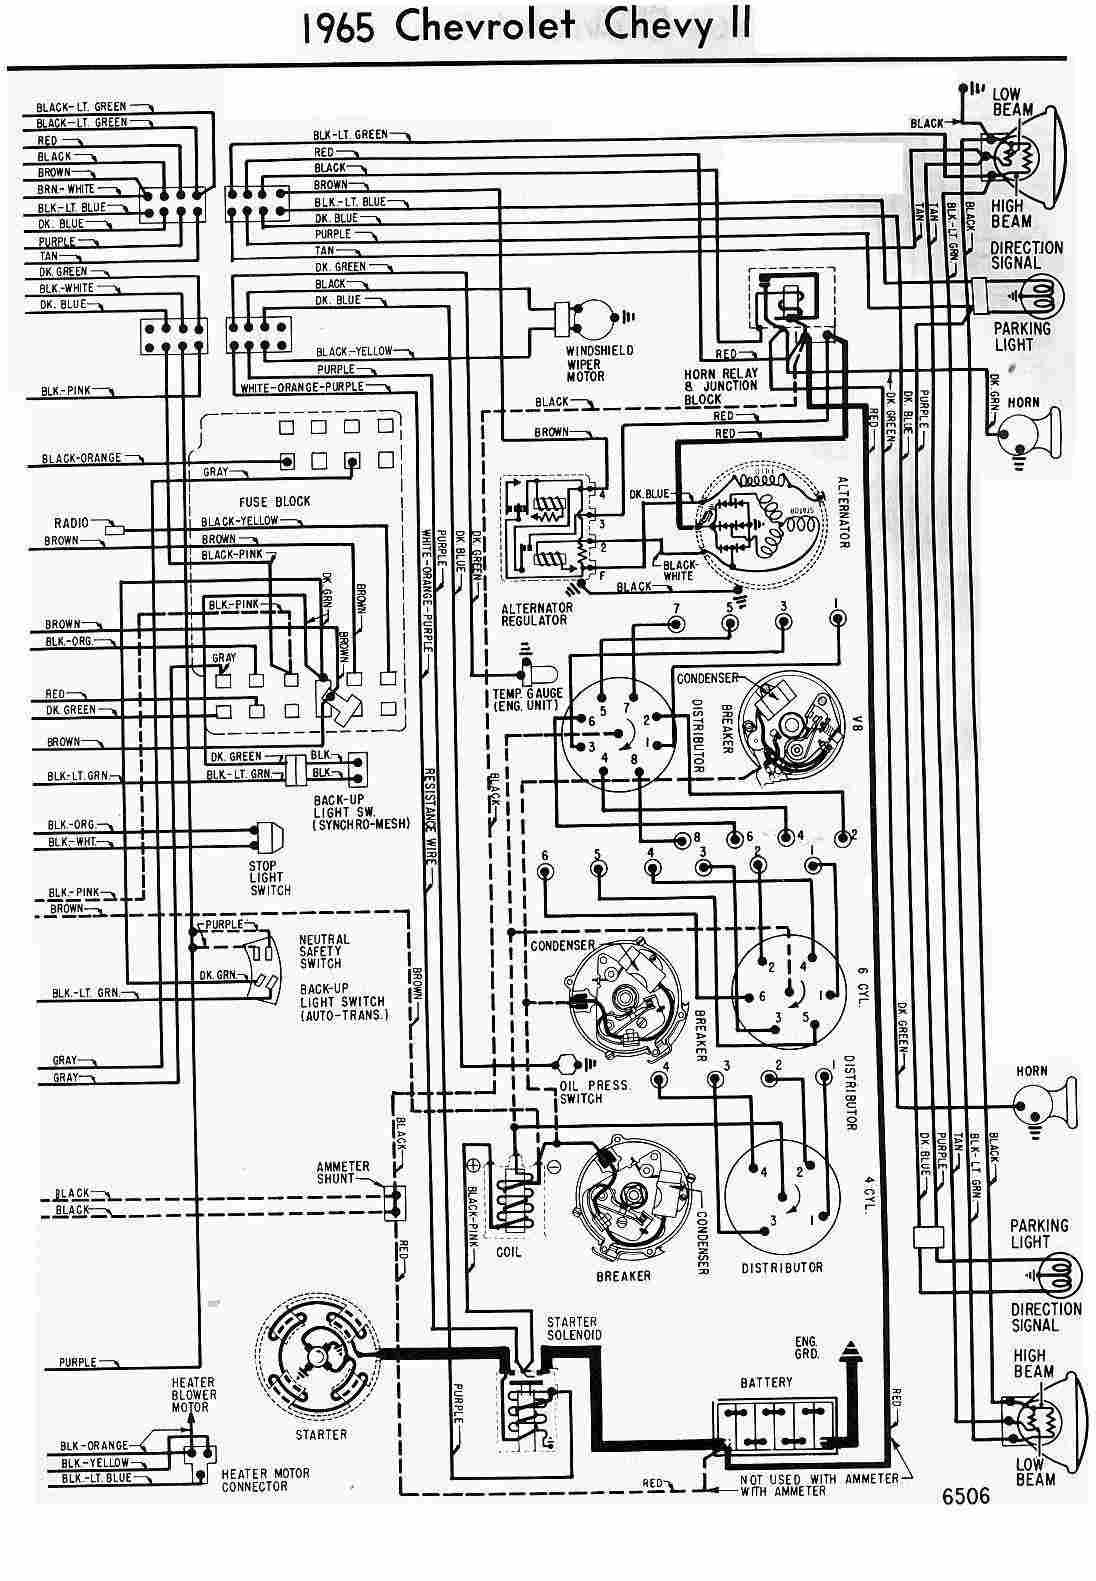 1965 Impala Engine Wiring - talk about wiring diagram on 1961 chevrolet truck, 1961 ford apache, 1958 gmc apache, chippewa apache, 1961 chevrolet deluxe, chevy apache, jeep apache, 1961 chevrolet stepside,